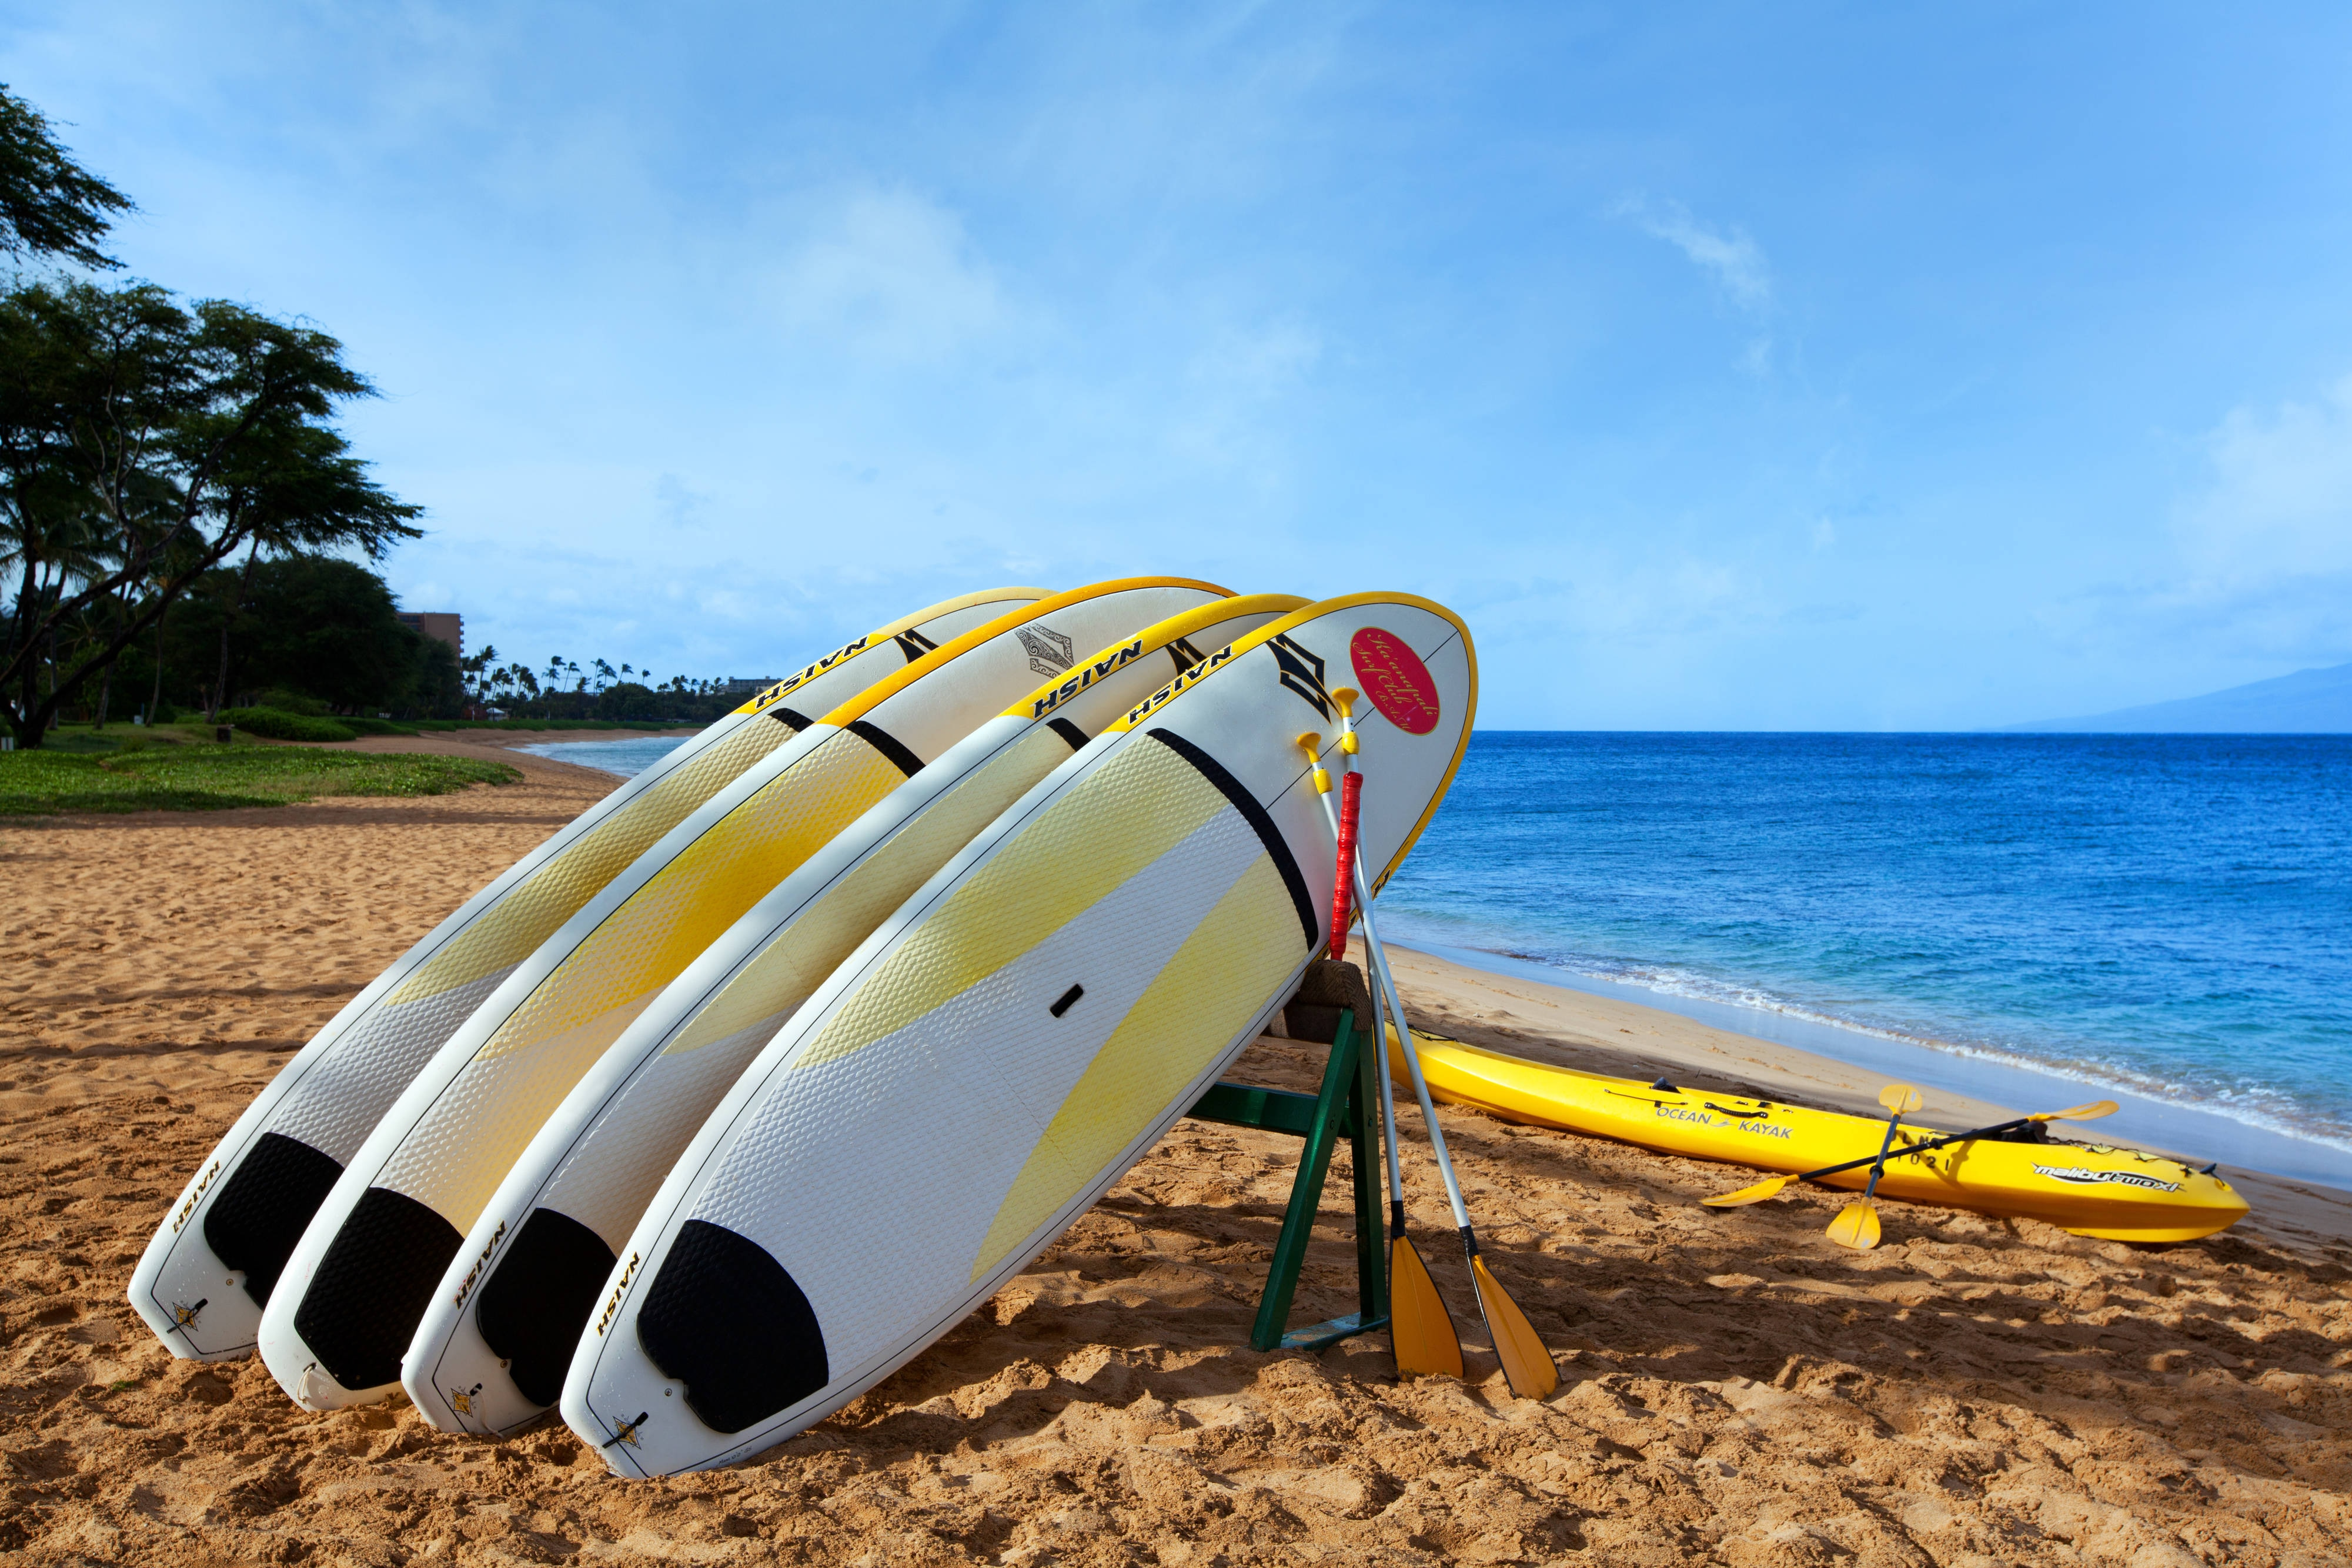 Kaanapali Beach with Stand-up paddle rentals